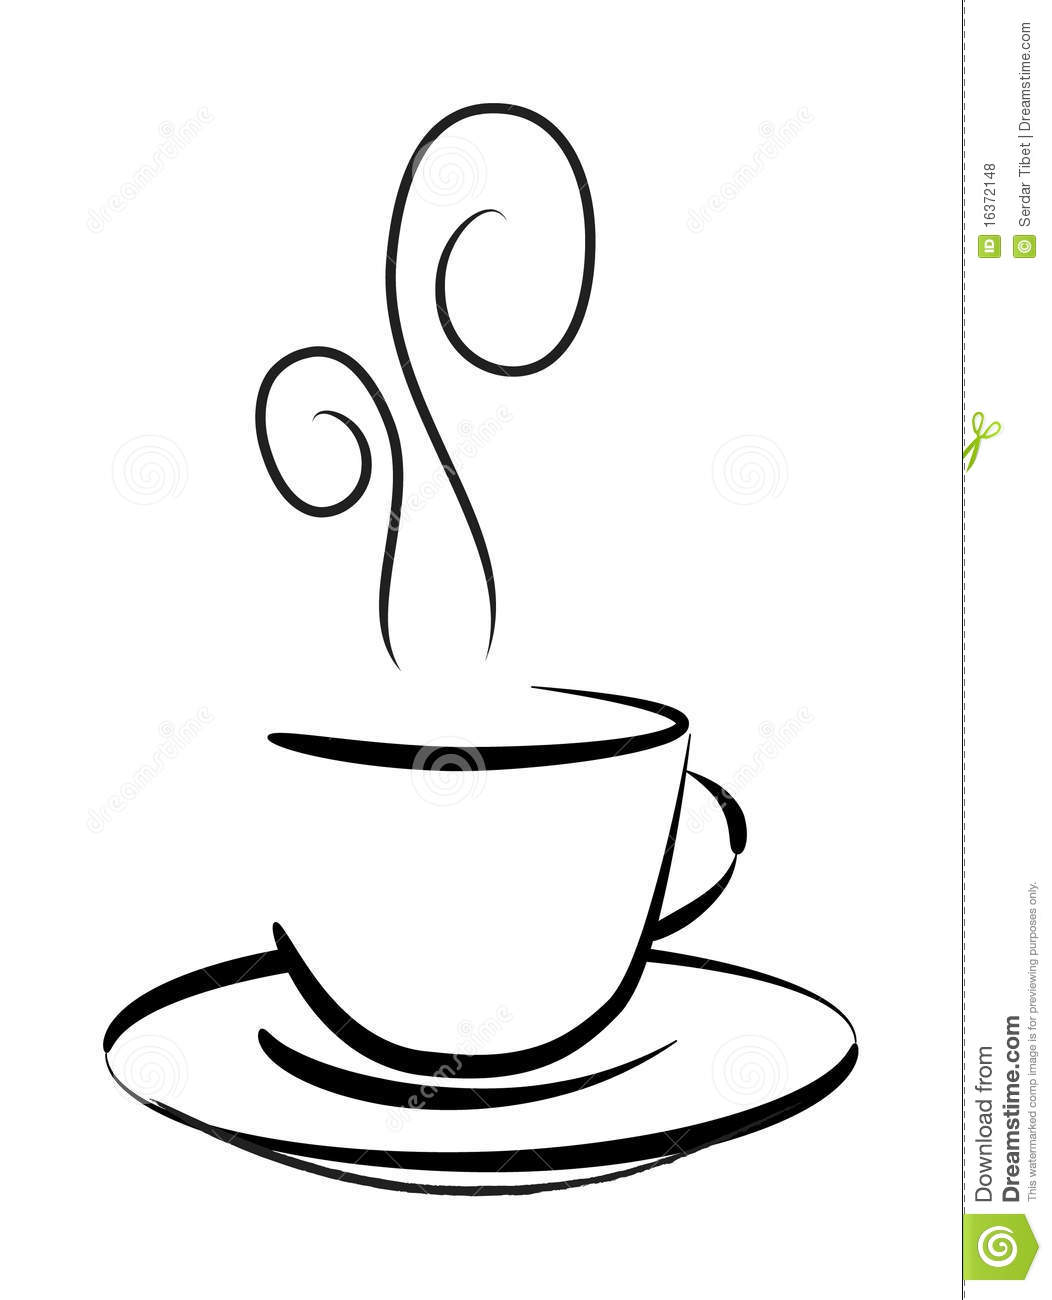 Coffee cup sketch - Royalty Free Stock Photo Download Coffee Mug Vector Drawing